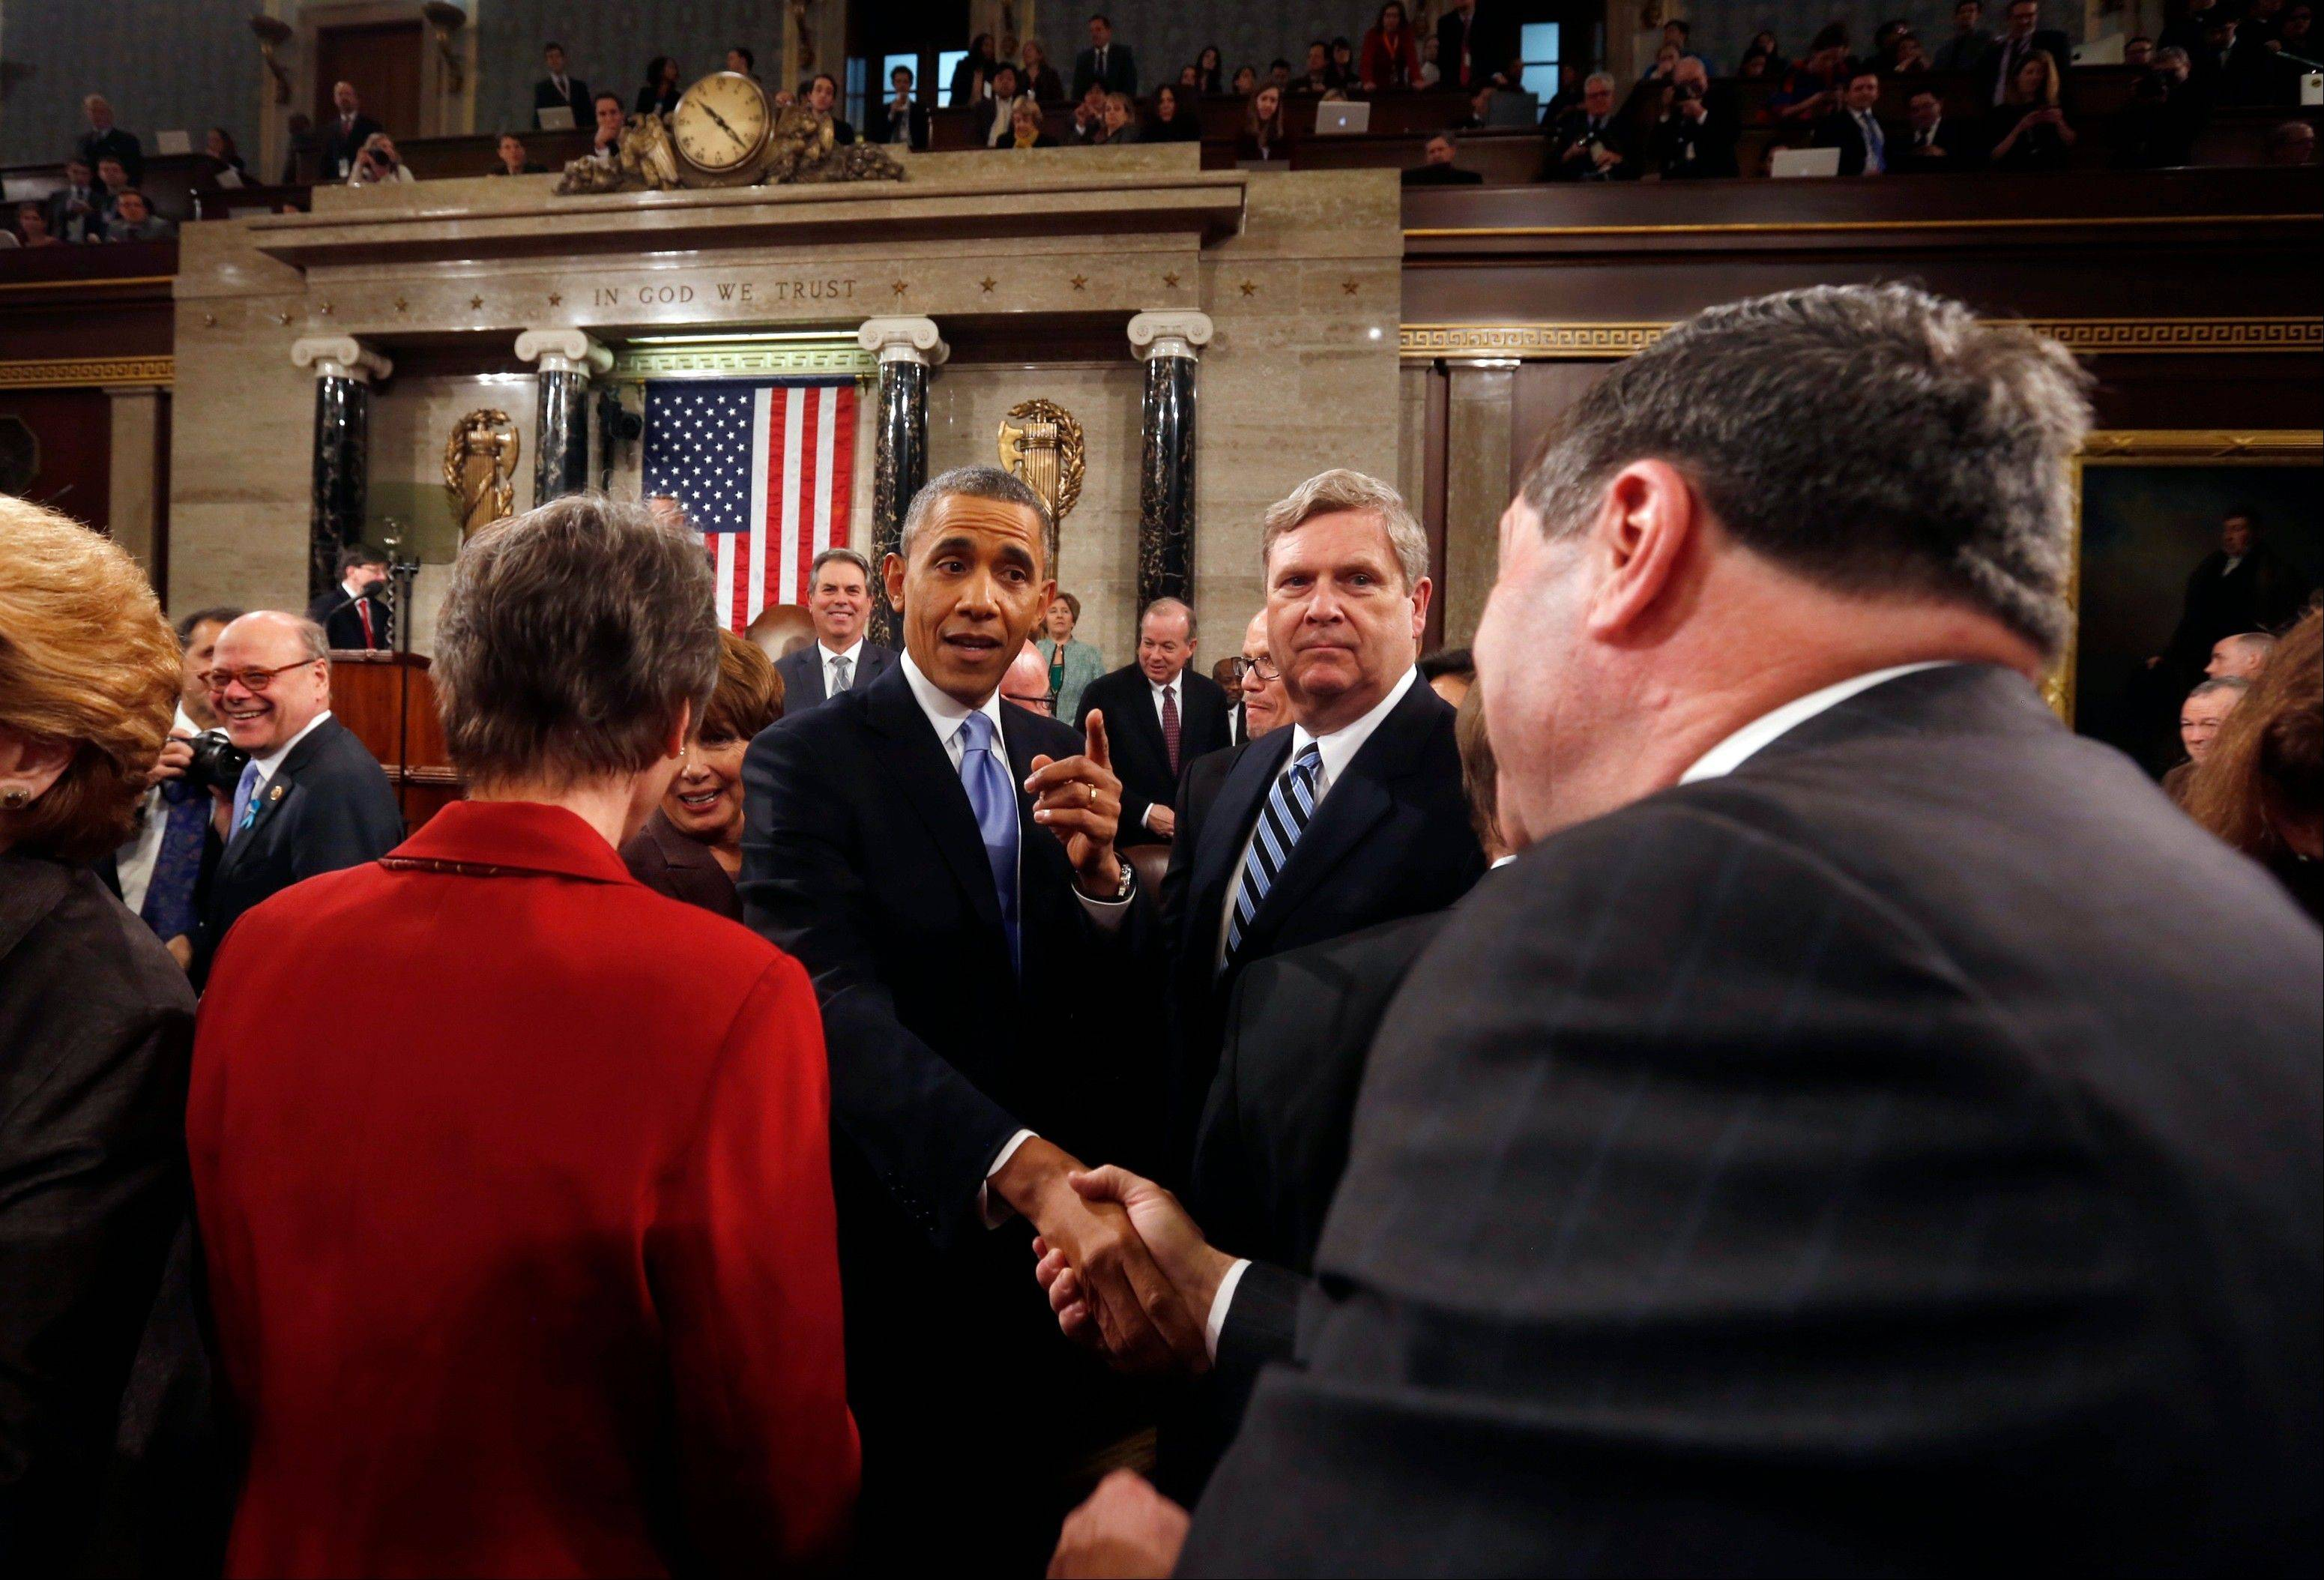 President Barack Obama shakes hands as he leaves after giving the State of Union address before a joint session of Congress in the House chamber Tuesday in Washington.